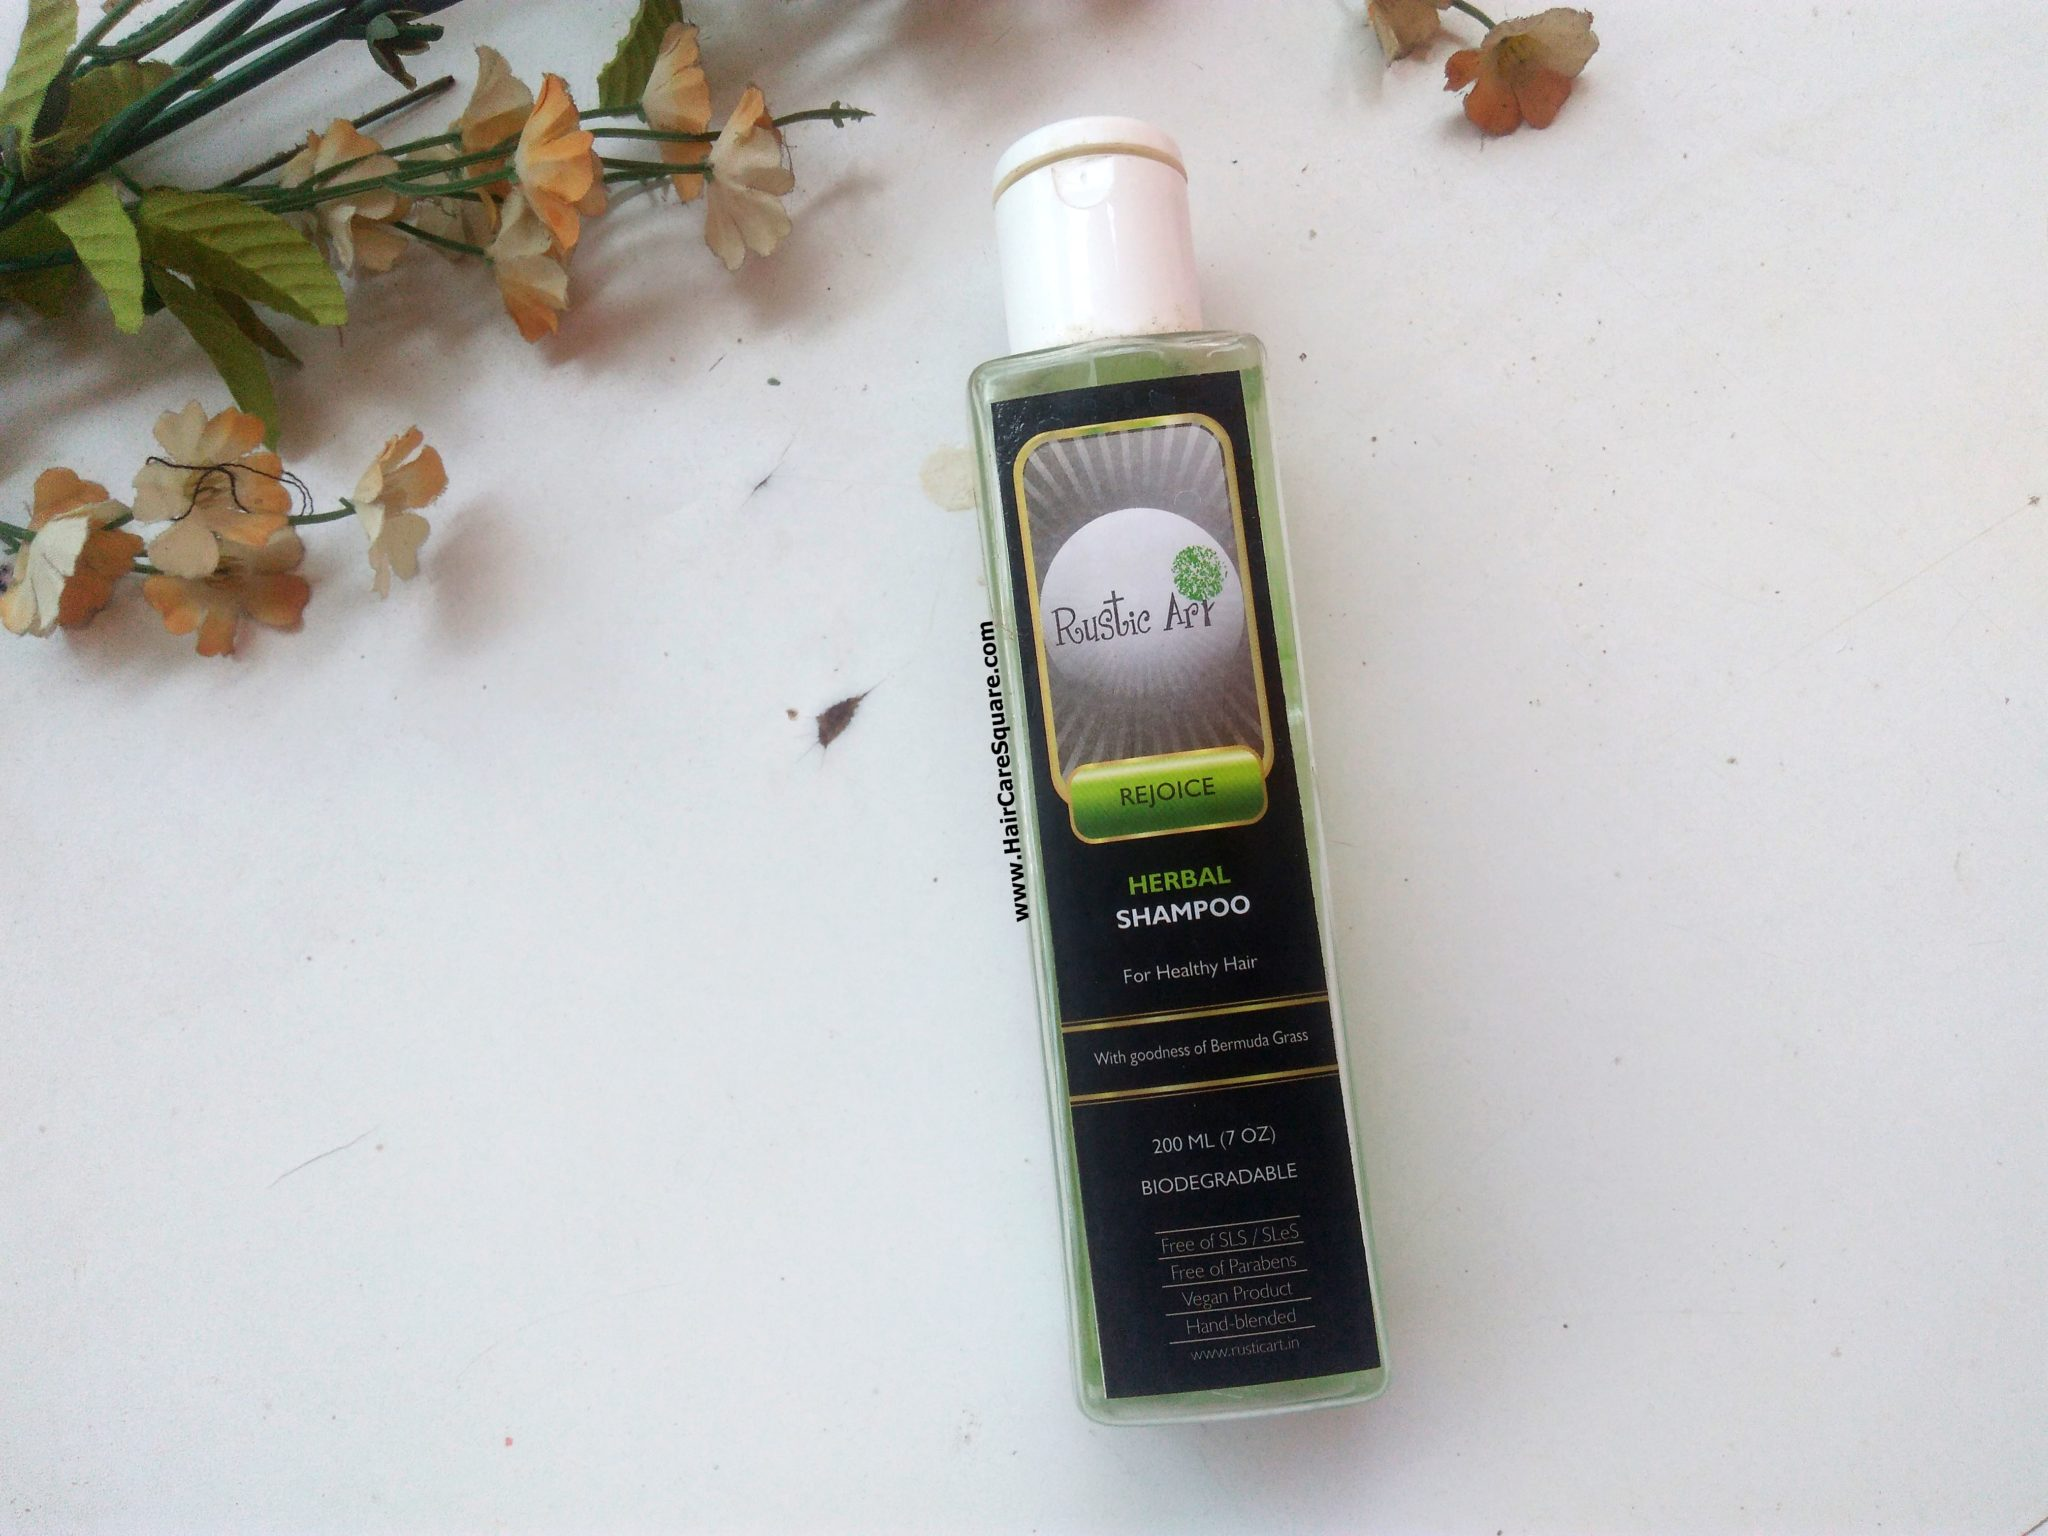 Rustic Art Biodegradable Herbal Shampoo